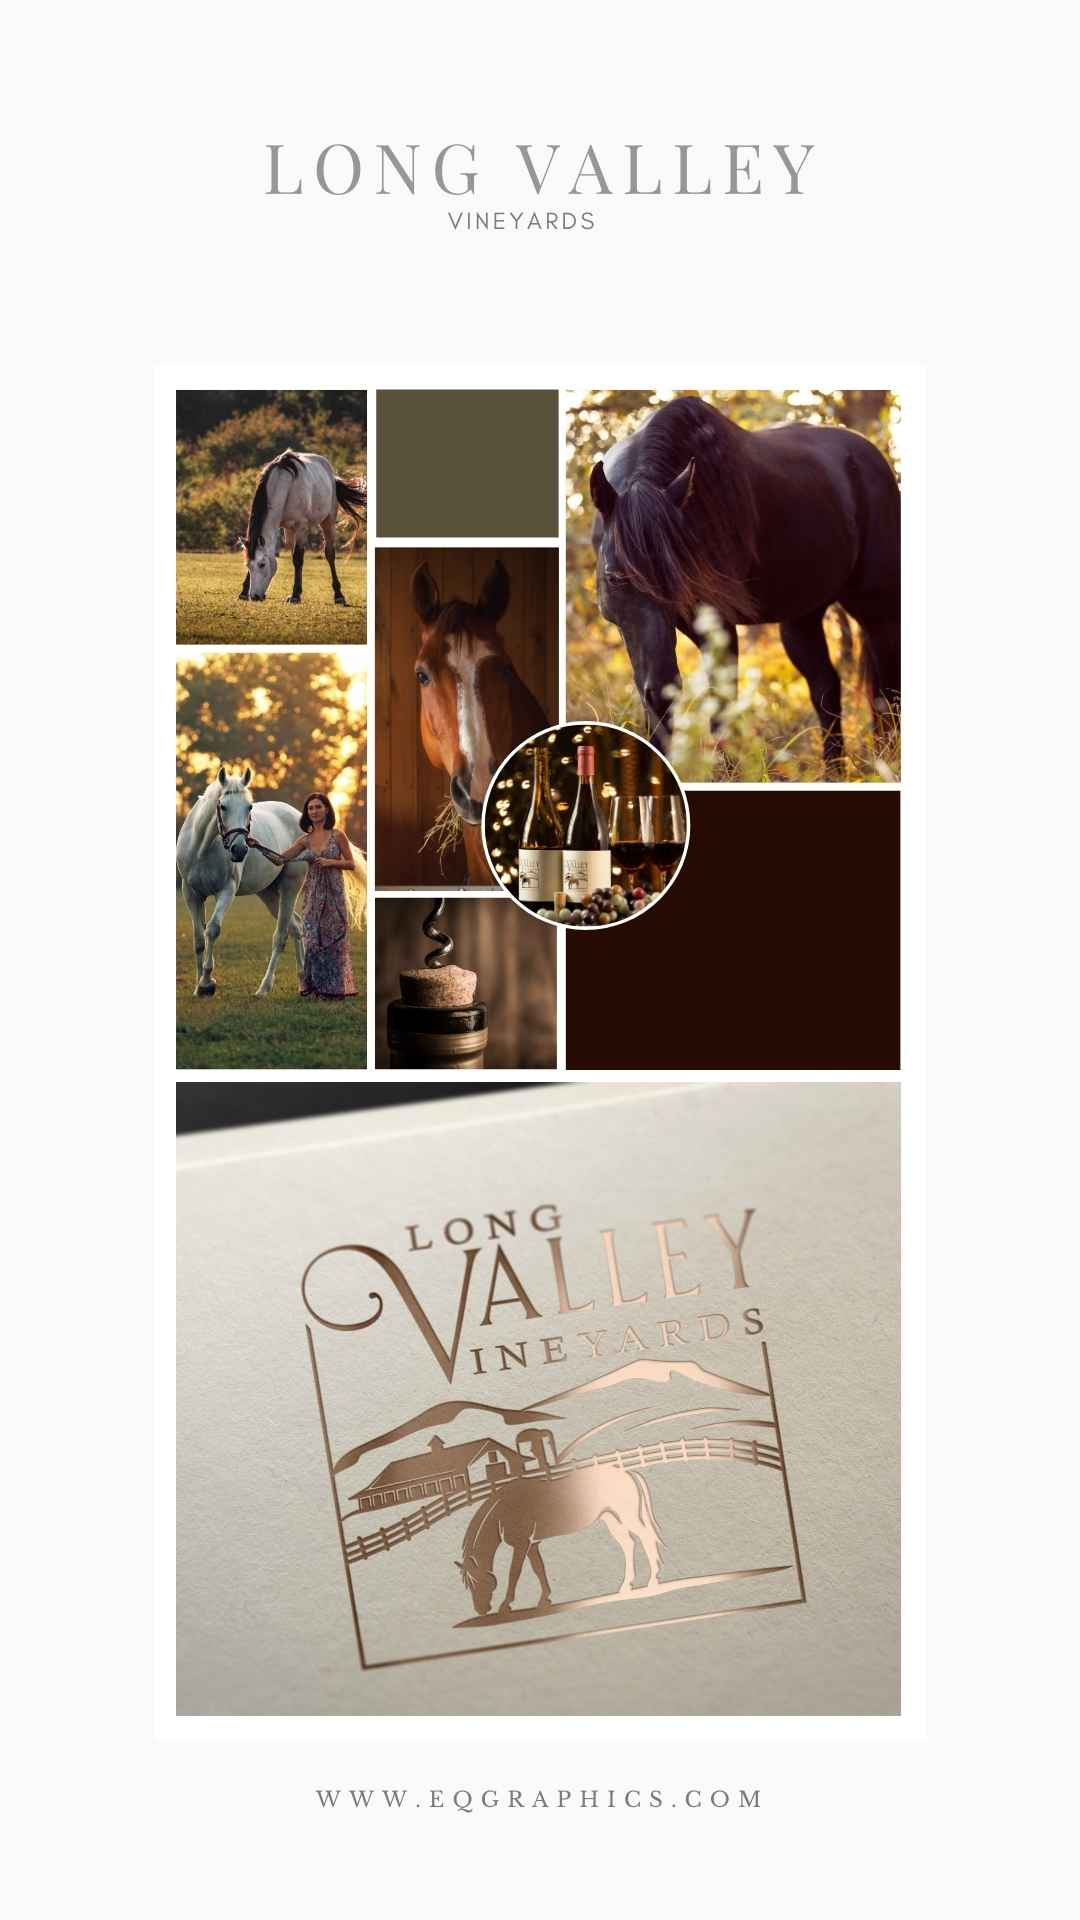 Horse illustration for a wine logo by EQ Graphics